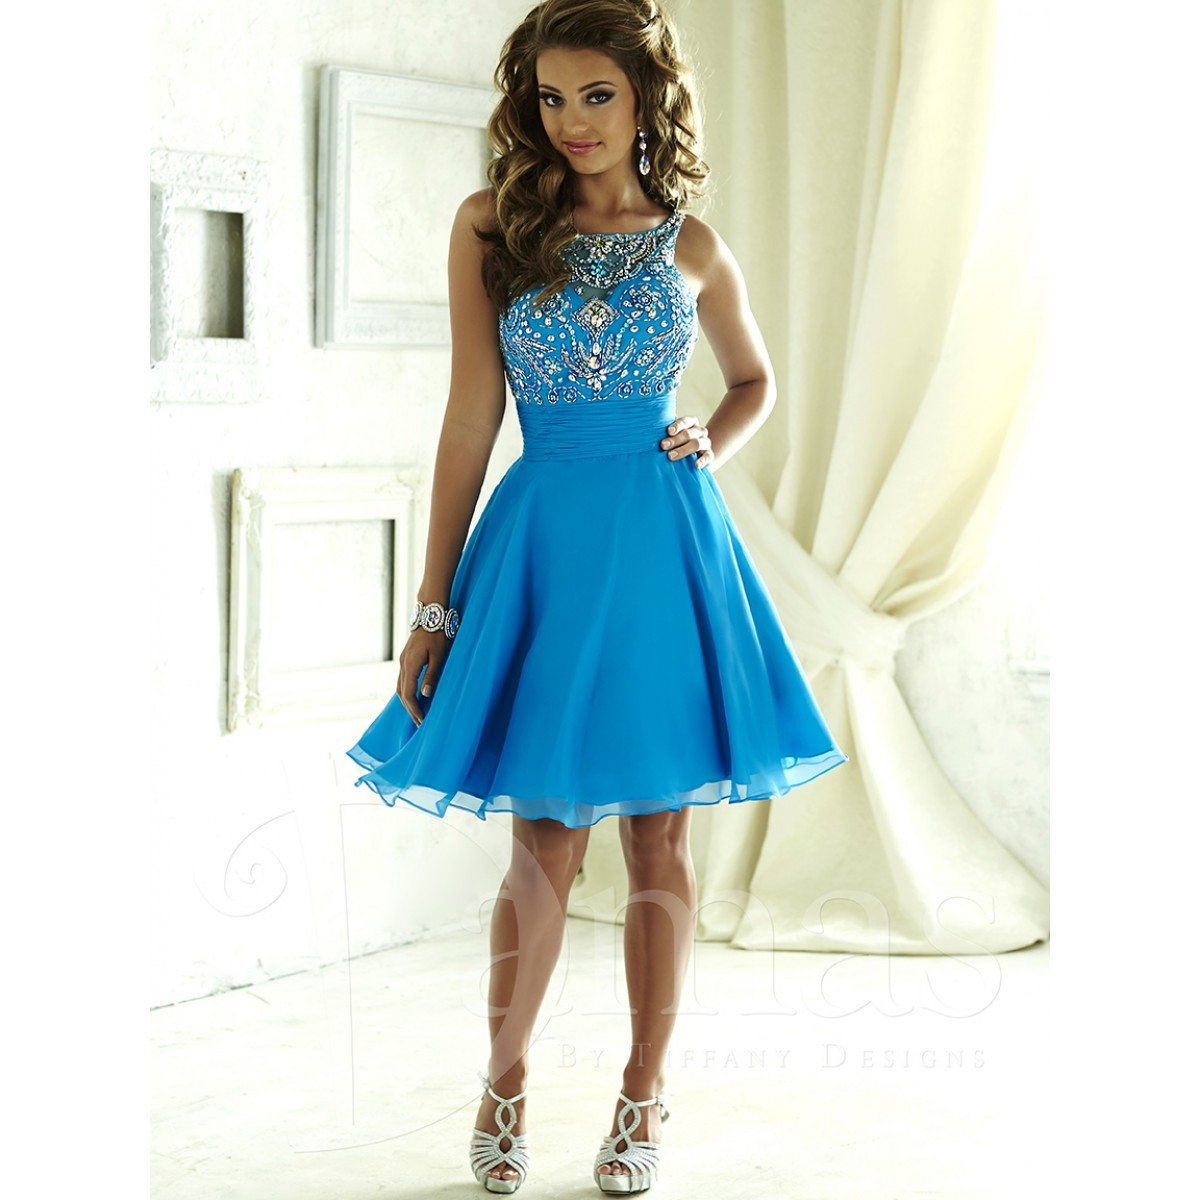 House of Wu Damas 52375 Short Party Dress | MadameBridal.com